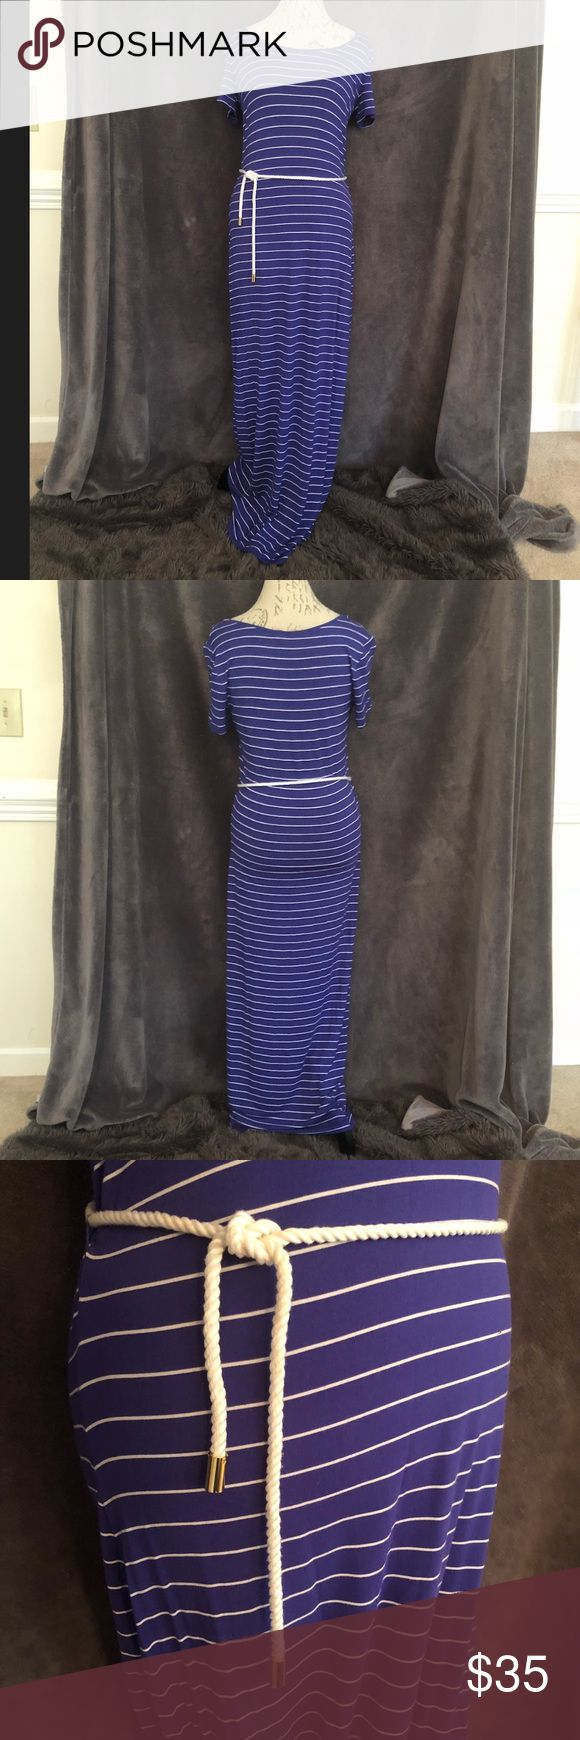 """Calvin Klein nautical maxi dress Calvin Klein nautical maxi dress. Short sleeve. Length is approx 55"""". Scoop neck, short sleeves. One of the belt loops has come unstitched (pictured). Only worn once. Calvin Klein Dresses Maxi"""